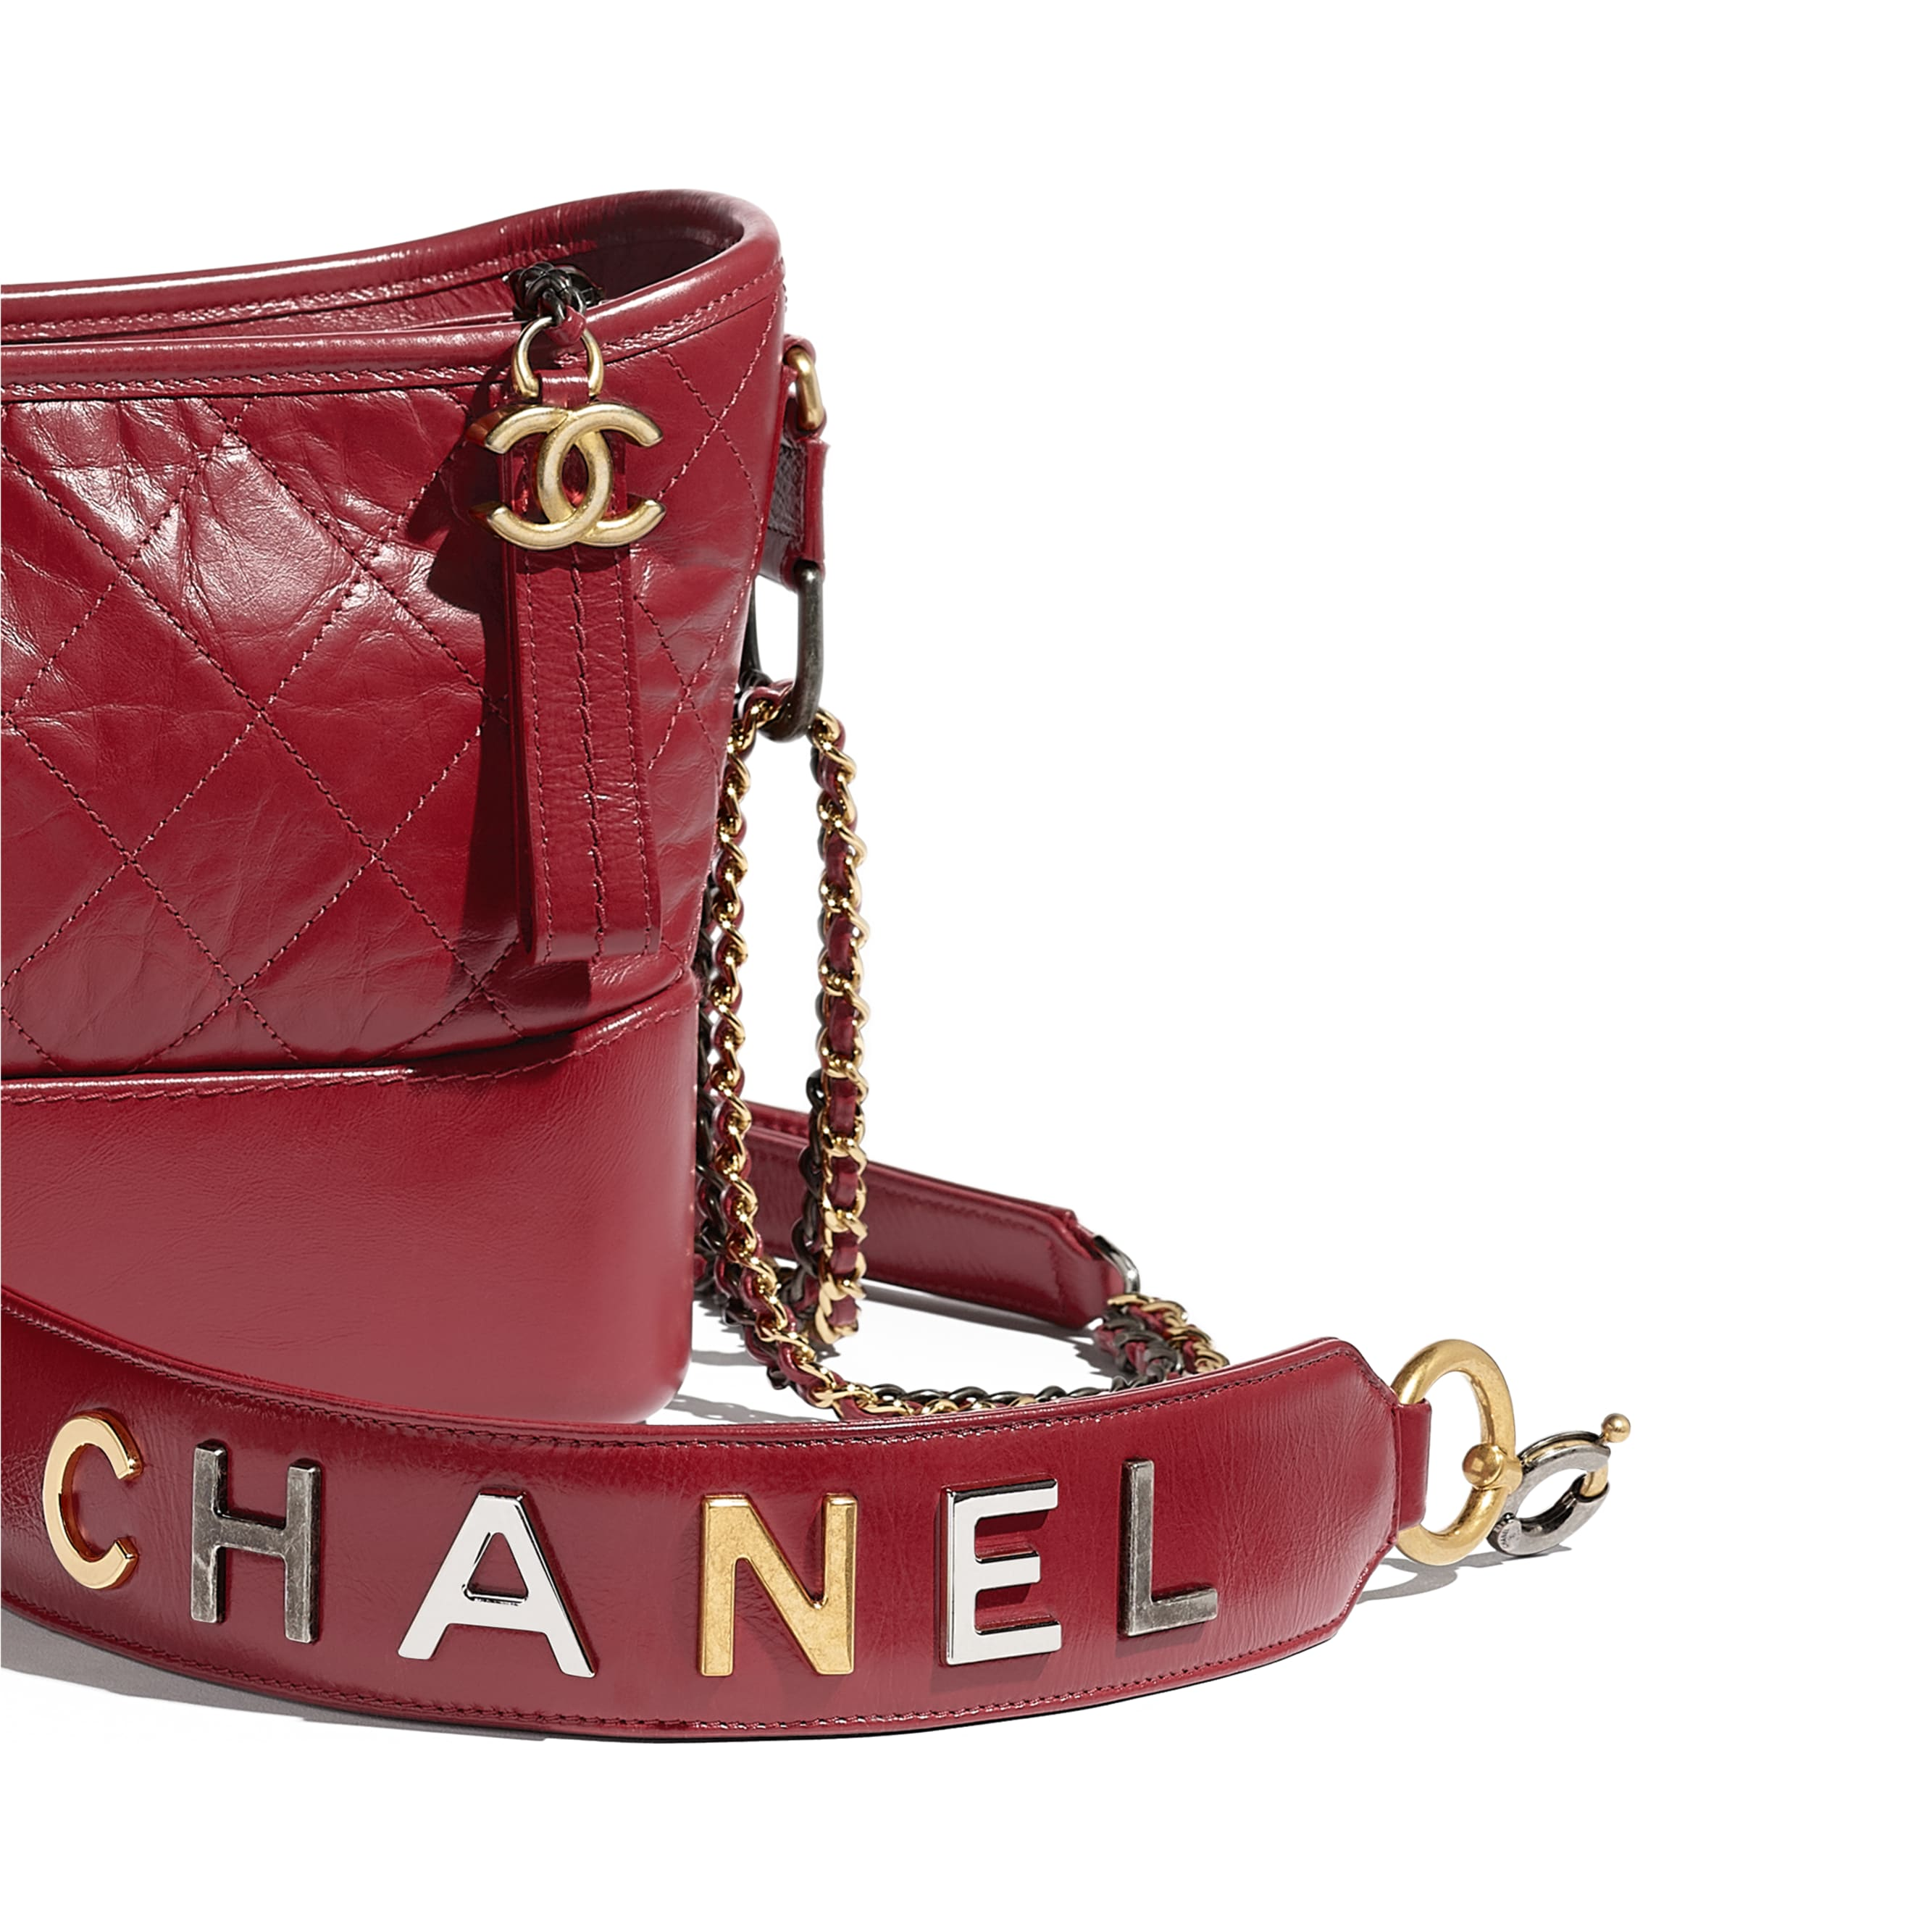 CHANEL'S GABRIELLE Hobo Bag - Red - Aged Calfskin, Smooth Calfskin, Gold-Tone & Silver-Tone Metal - CHANEL - Extra view - see standard sized version